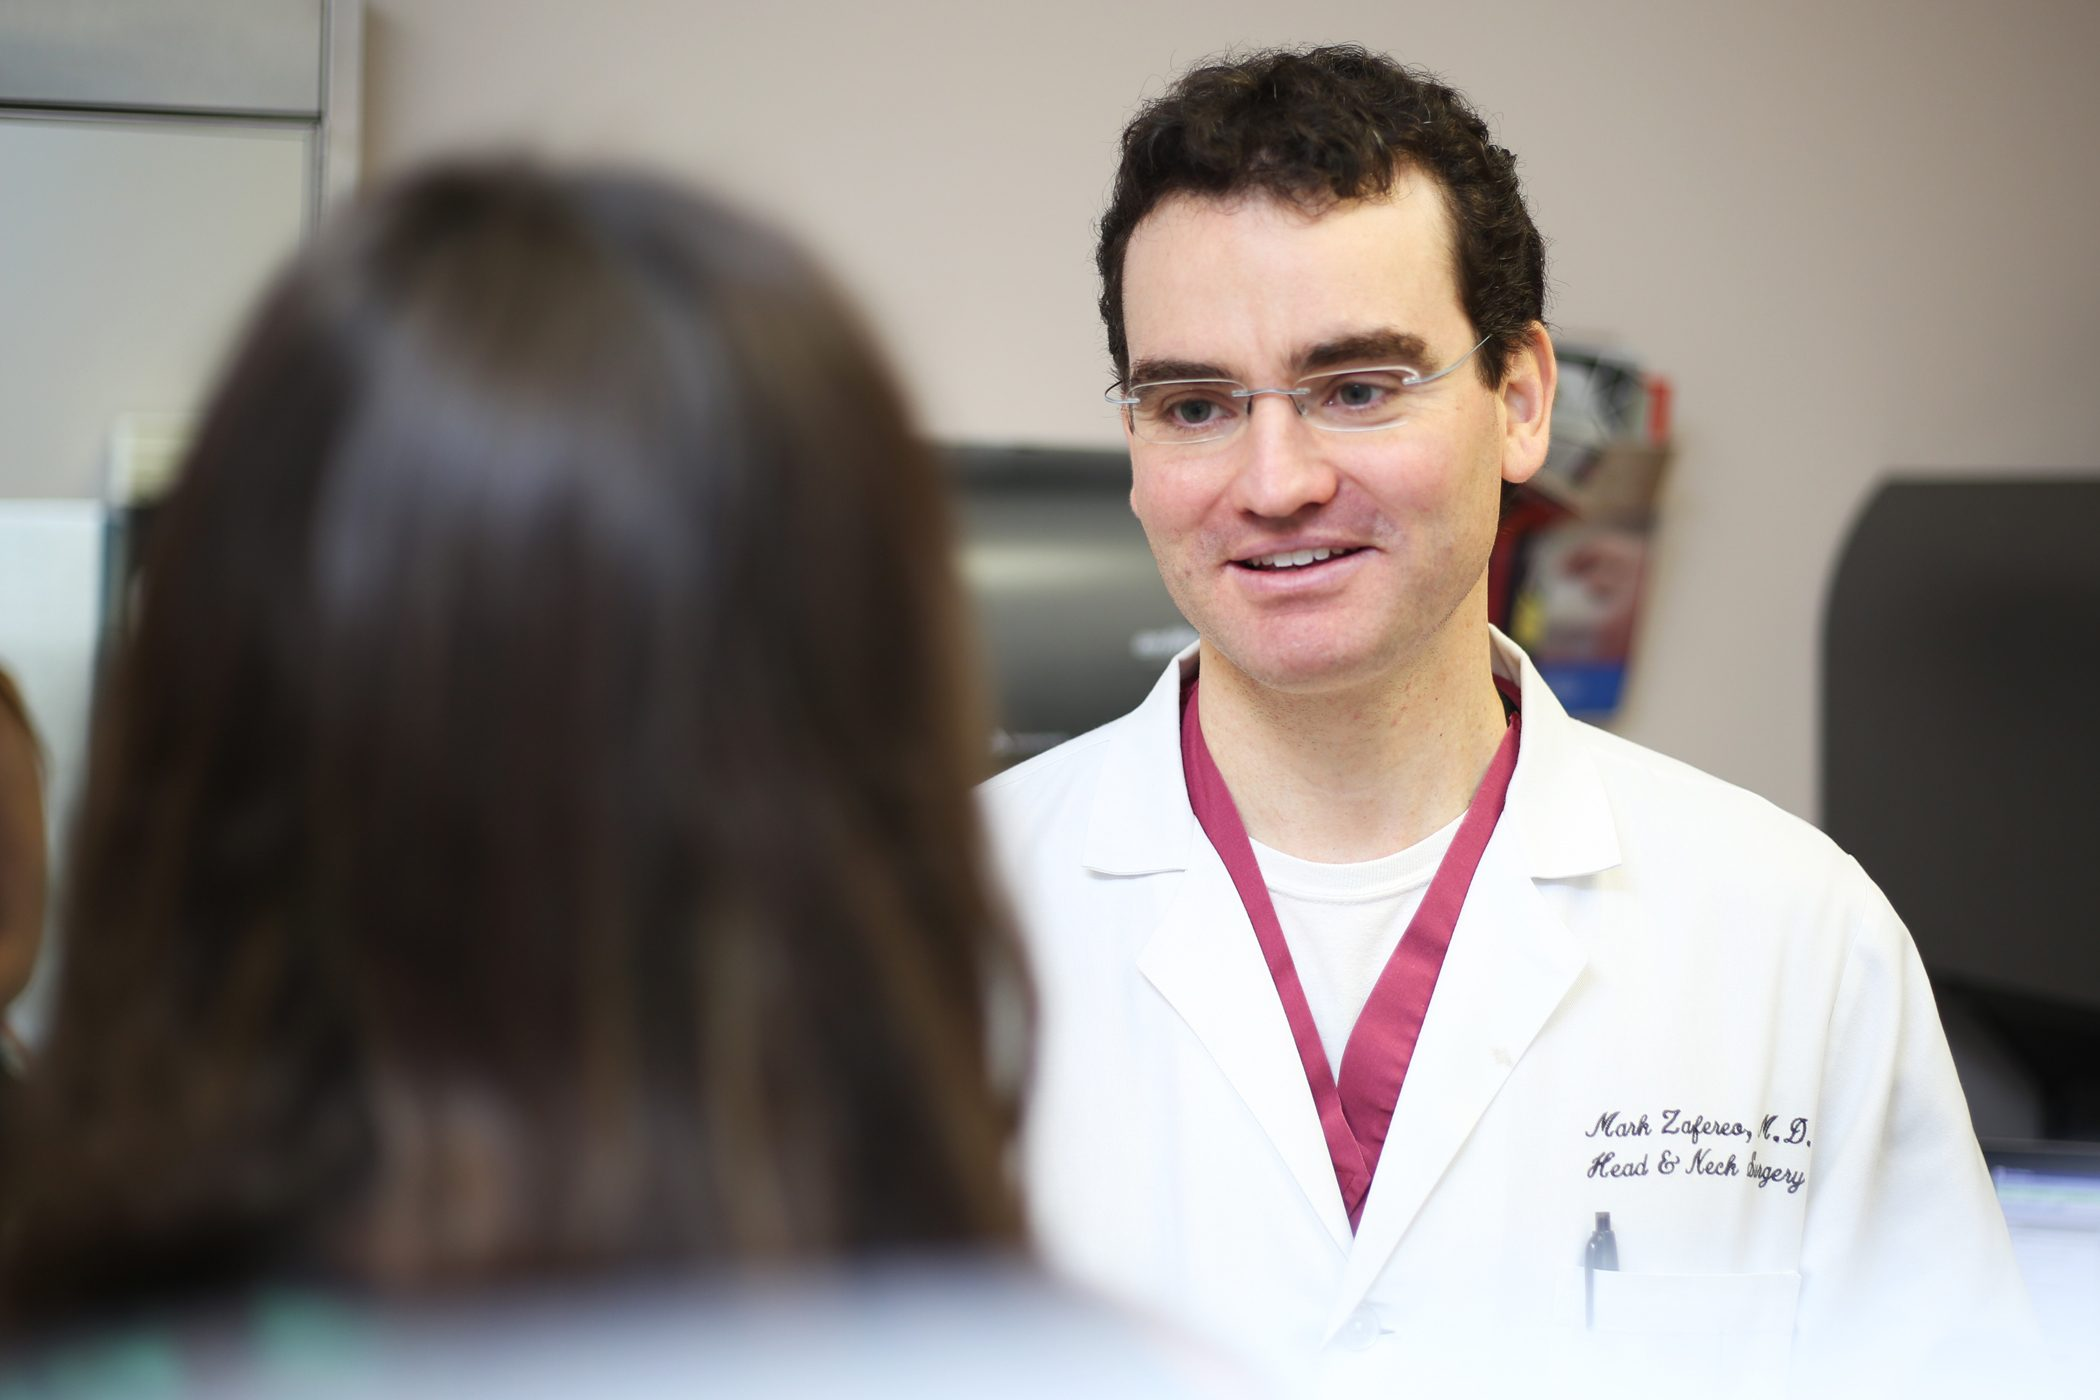 Cancerwise blog post: Mark Zafereo, M.D., discusses thyroid nodules and thyroid cancer surgery